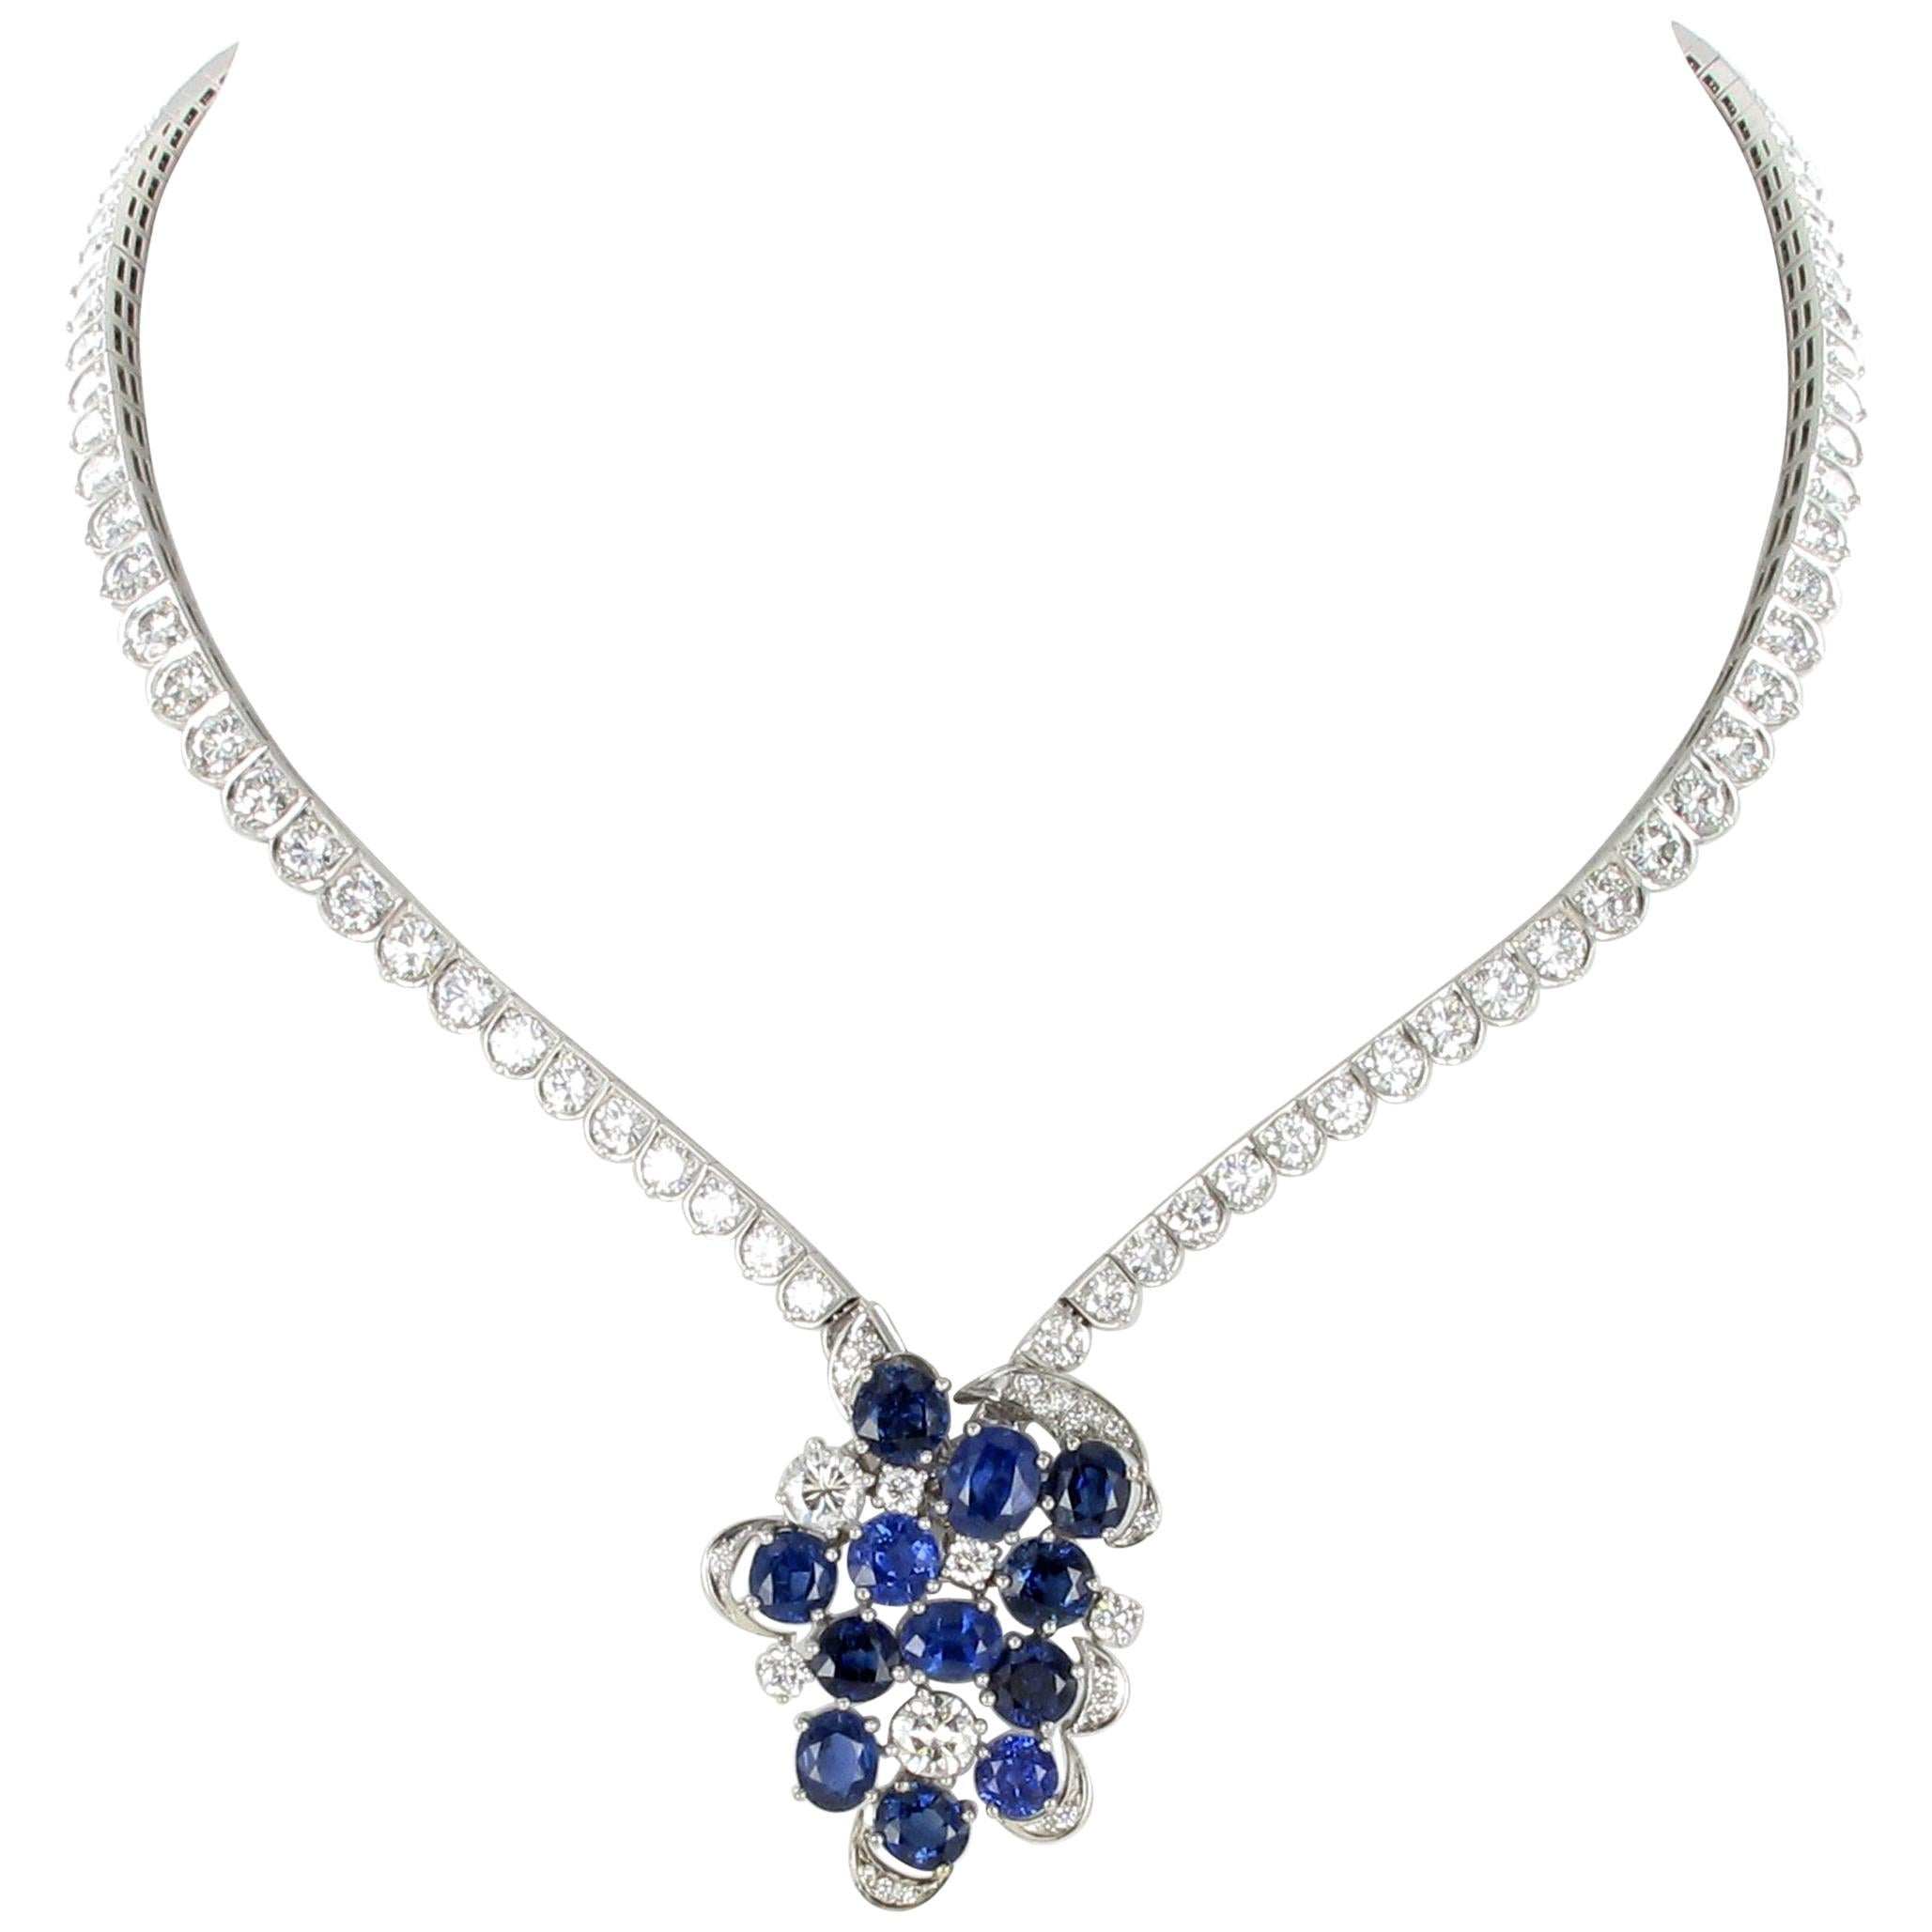 Elegant Diamond and Sapphire Necklace in 950 Platinum by Schilling